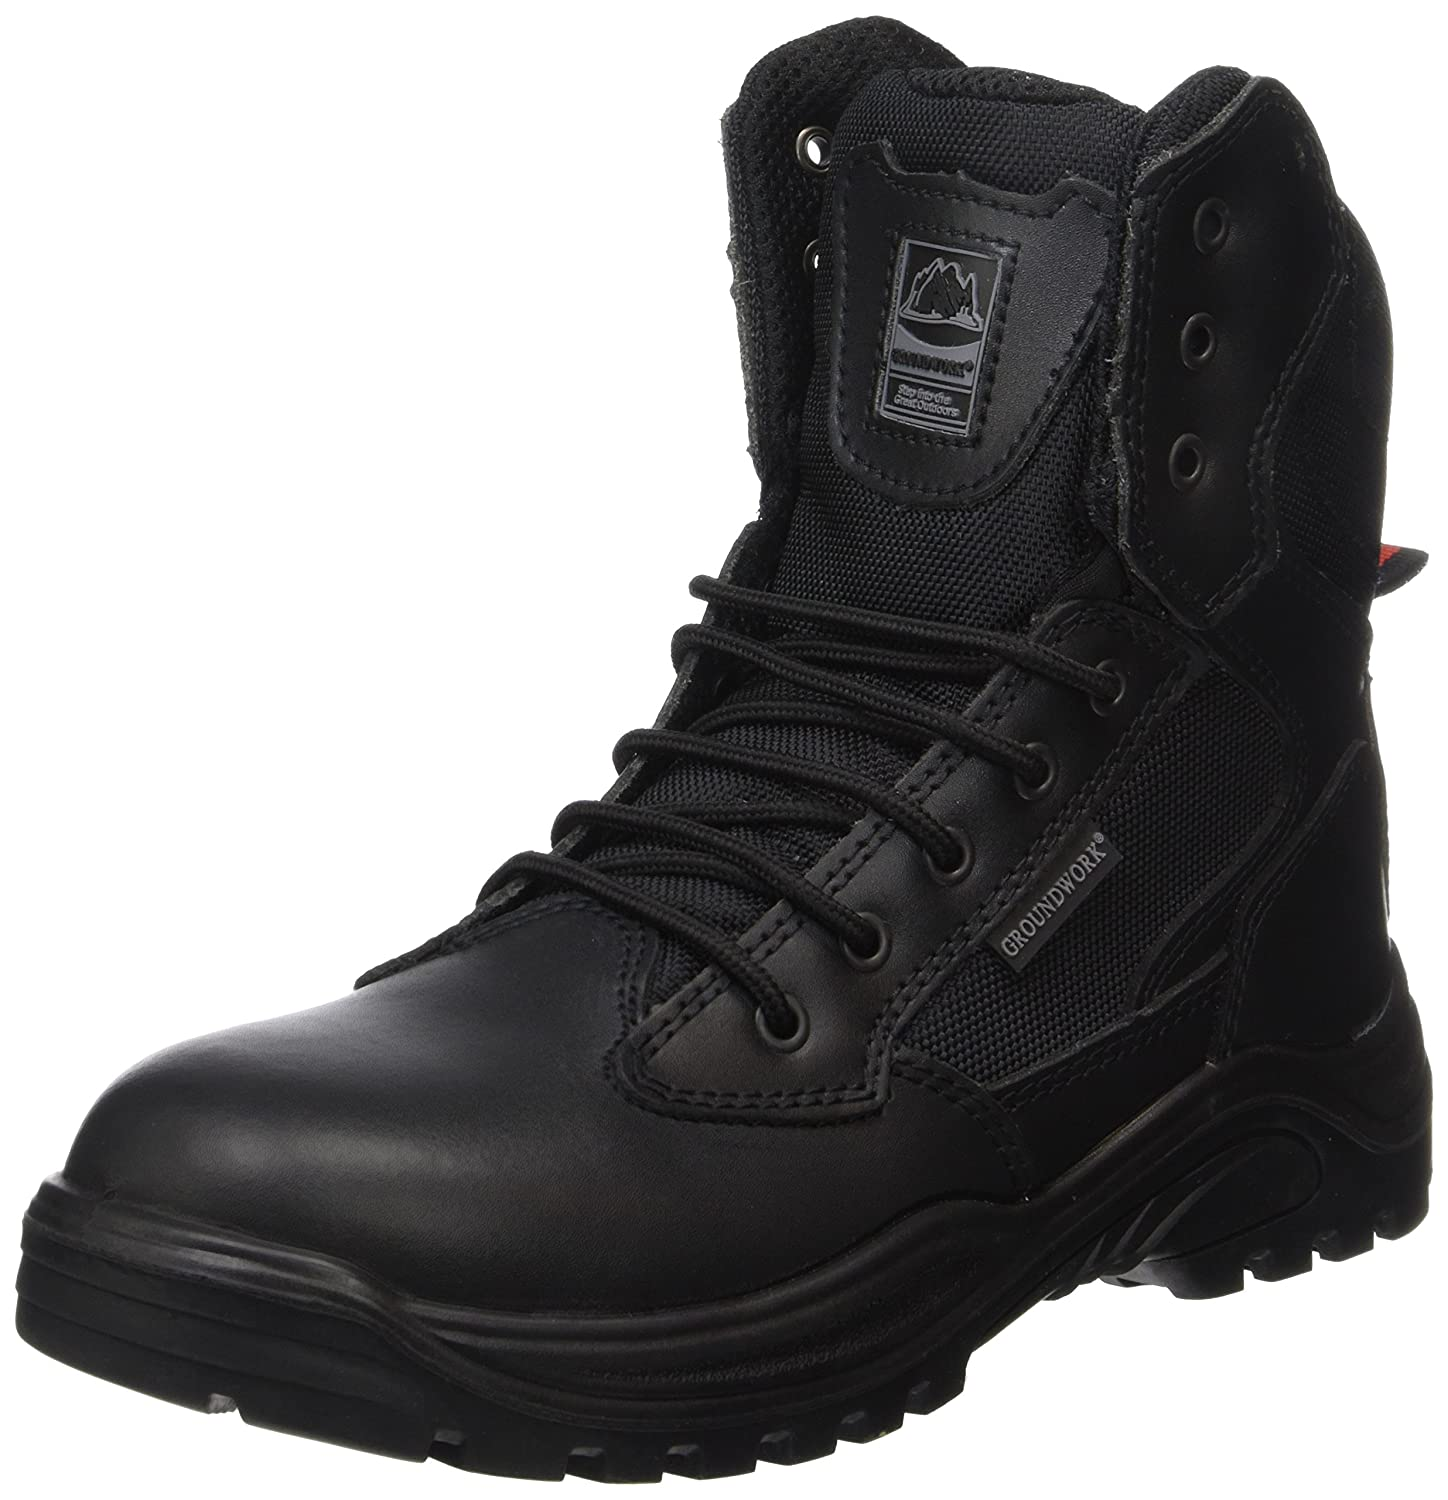 225bbf8d2d76 Steel Toe Cap Combat Tactical Safety Ankle Boots Security Military Police  Boot